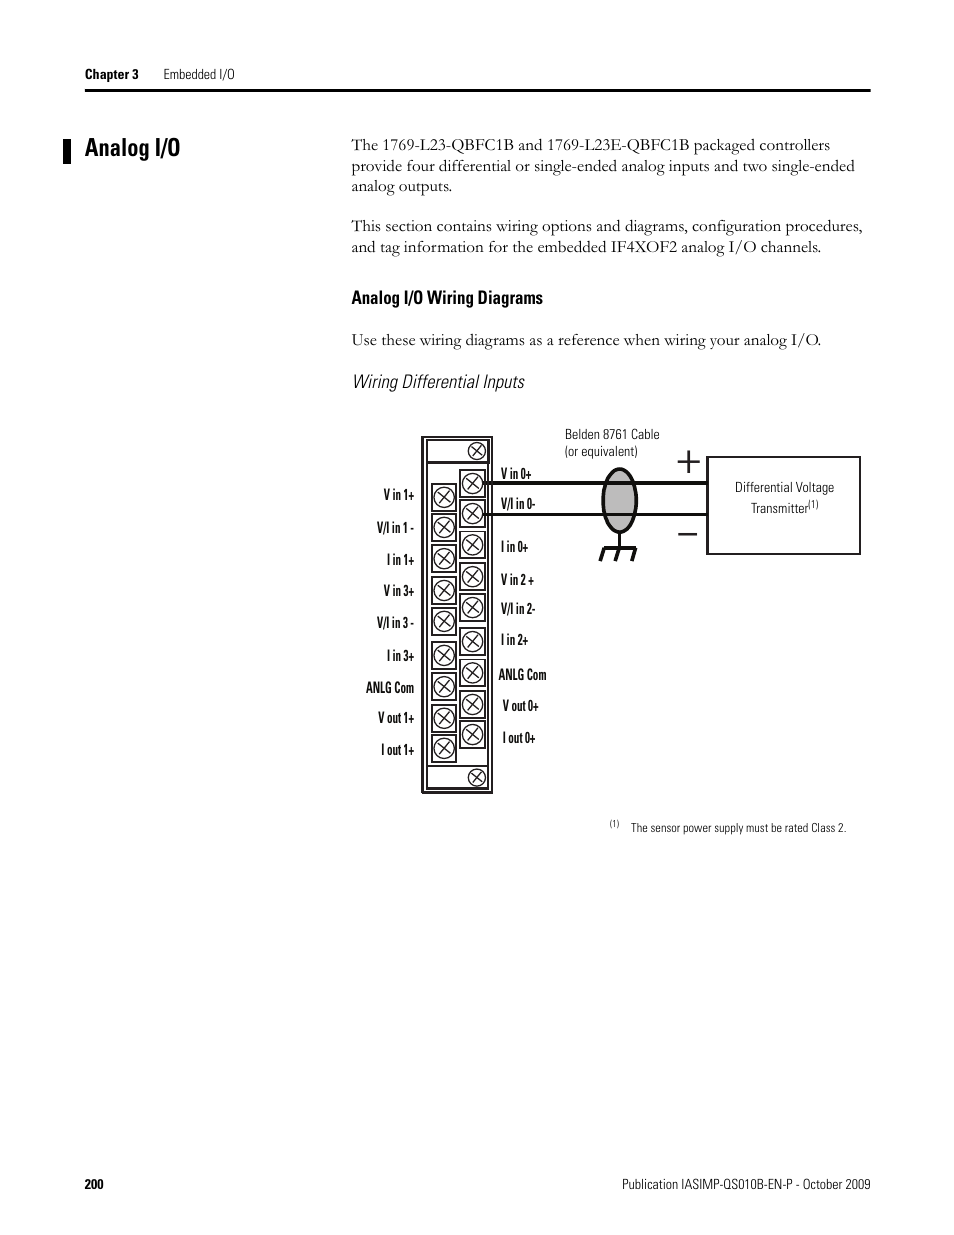 rockwell automation 1769 l23e qb1b_l23e qbfc1b_l23 qbfc1b compactlogix packaged controllers quick start and user manual page200 analog i o, analog i o wiring diagrams rockwell automation 1769  at gsmx.co